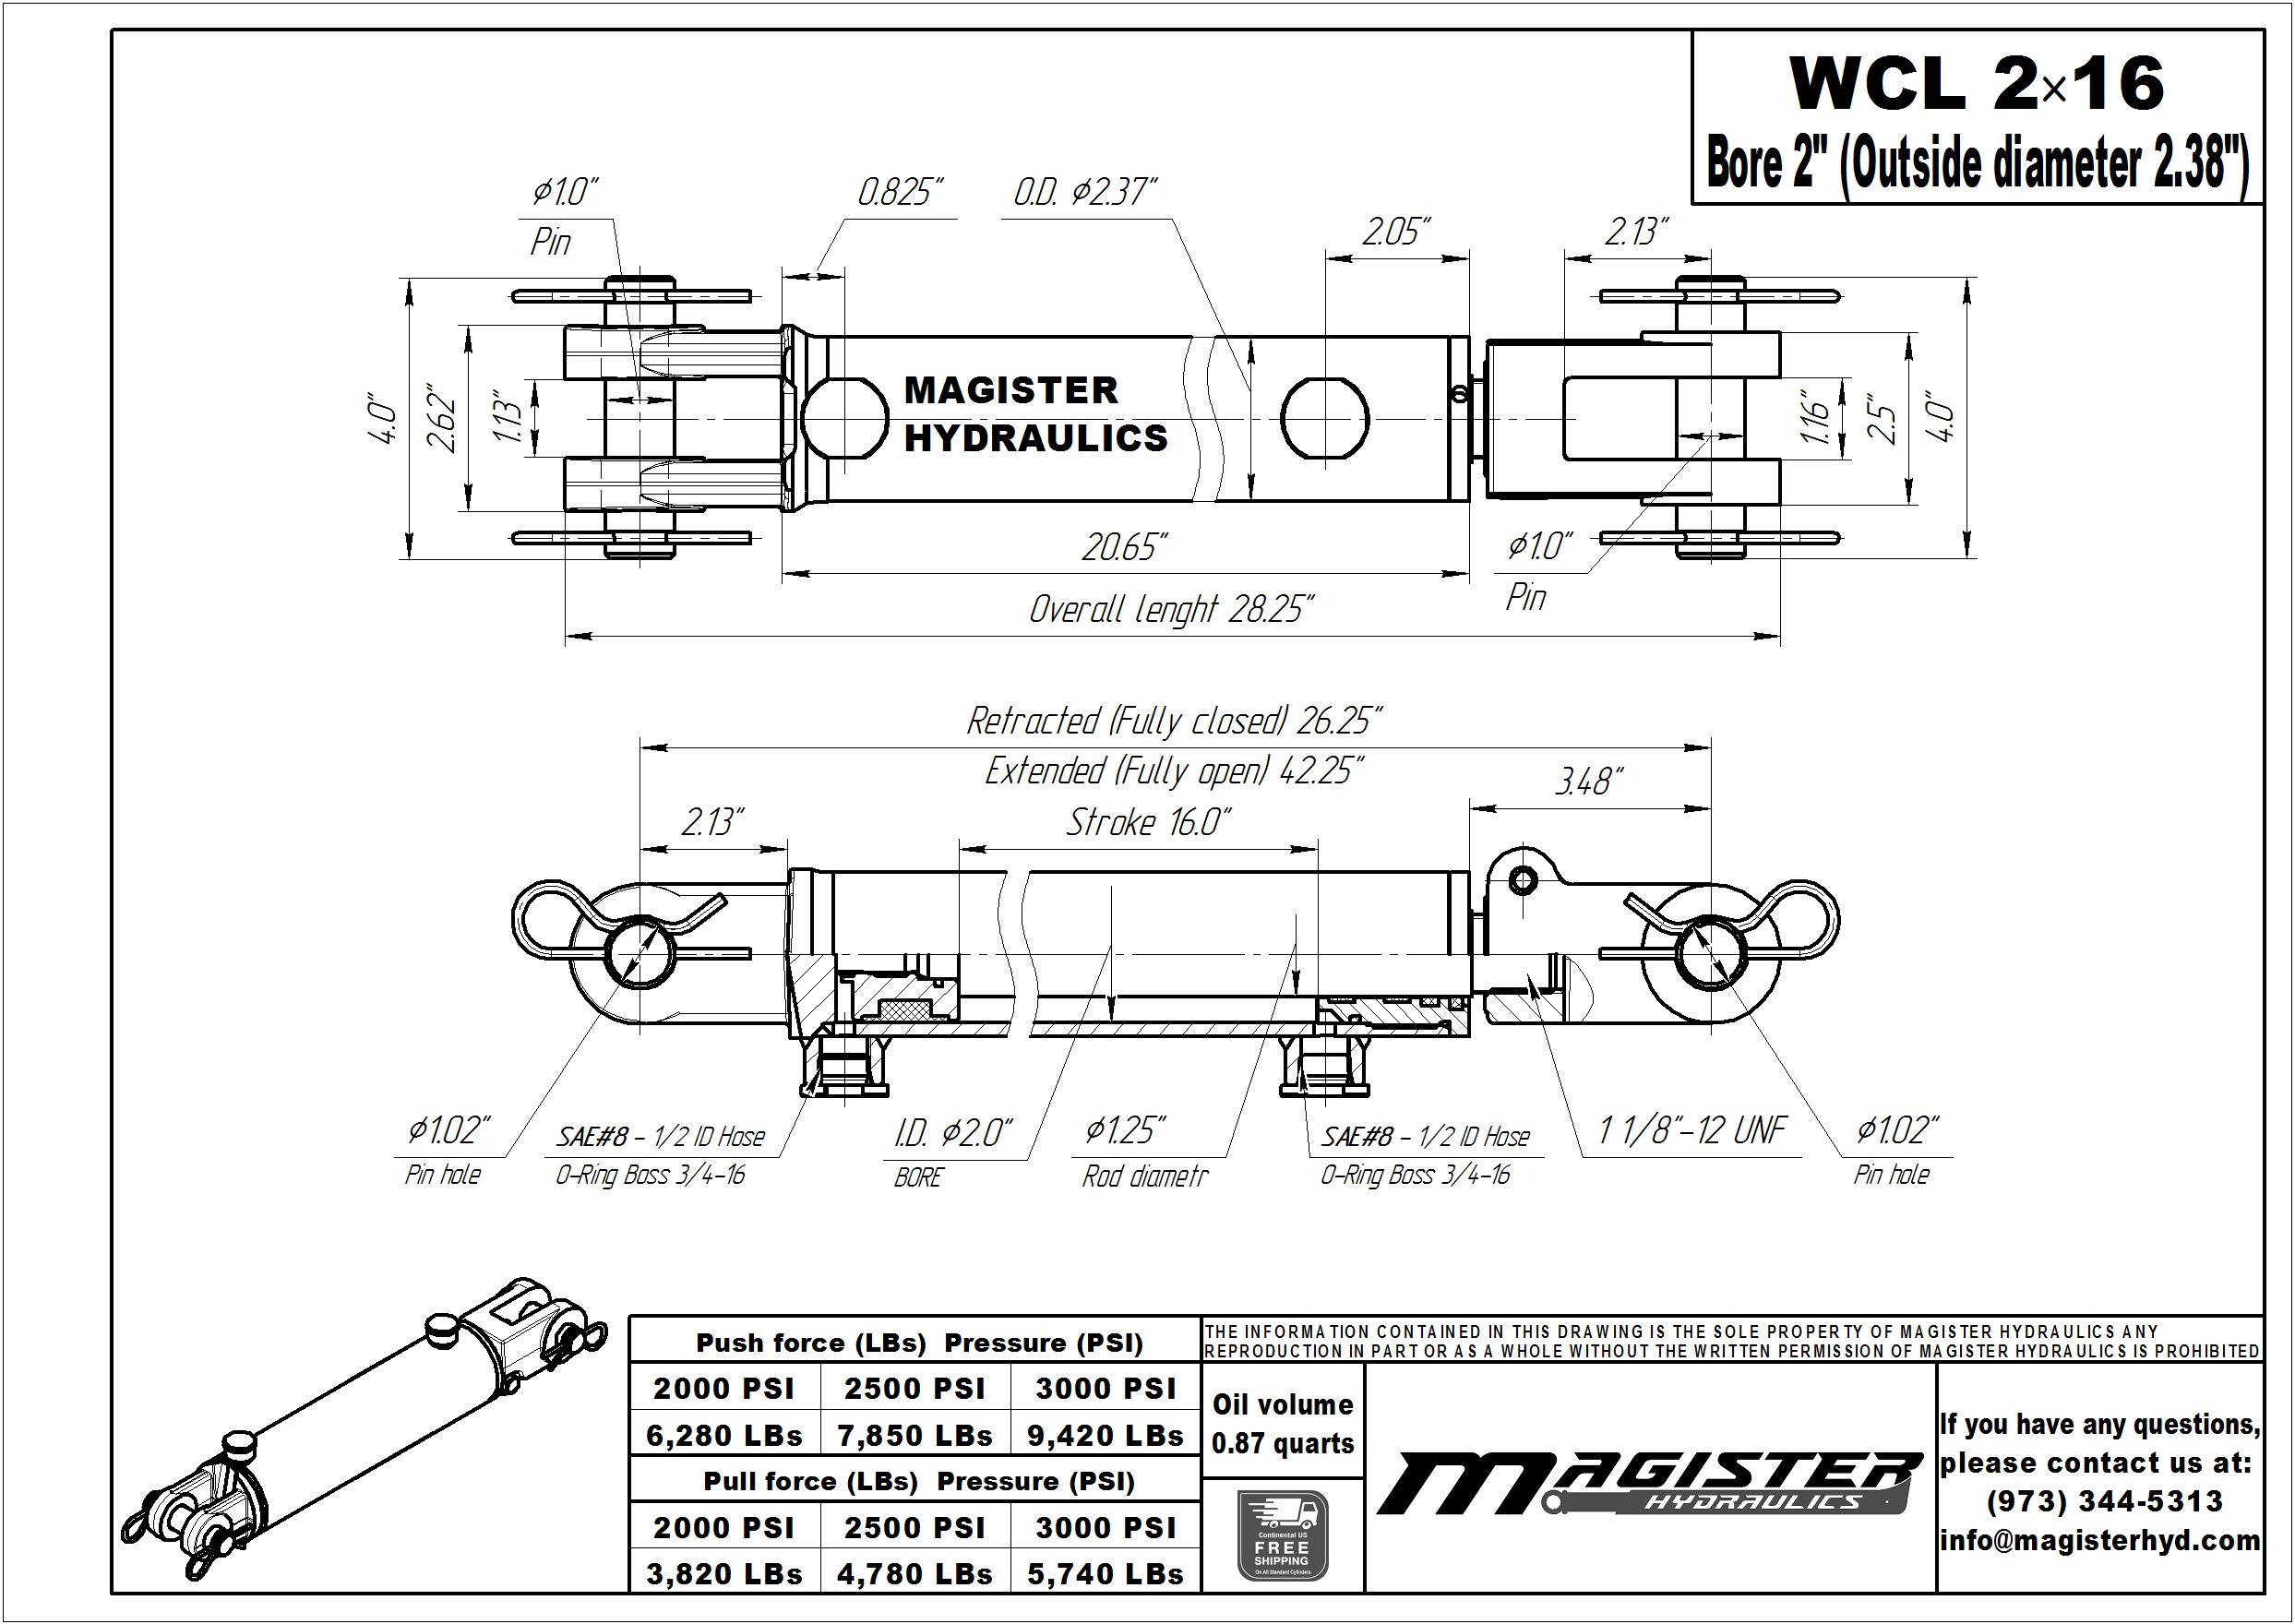 2 bore x 16 stroke hydraulic cylinder, welded clevis double acting cylinder | Magister Hydraulics